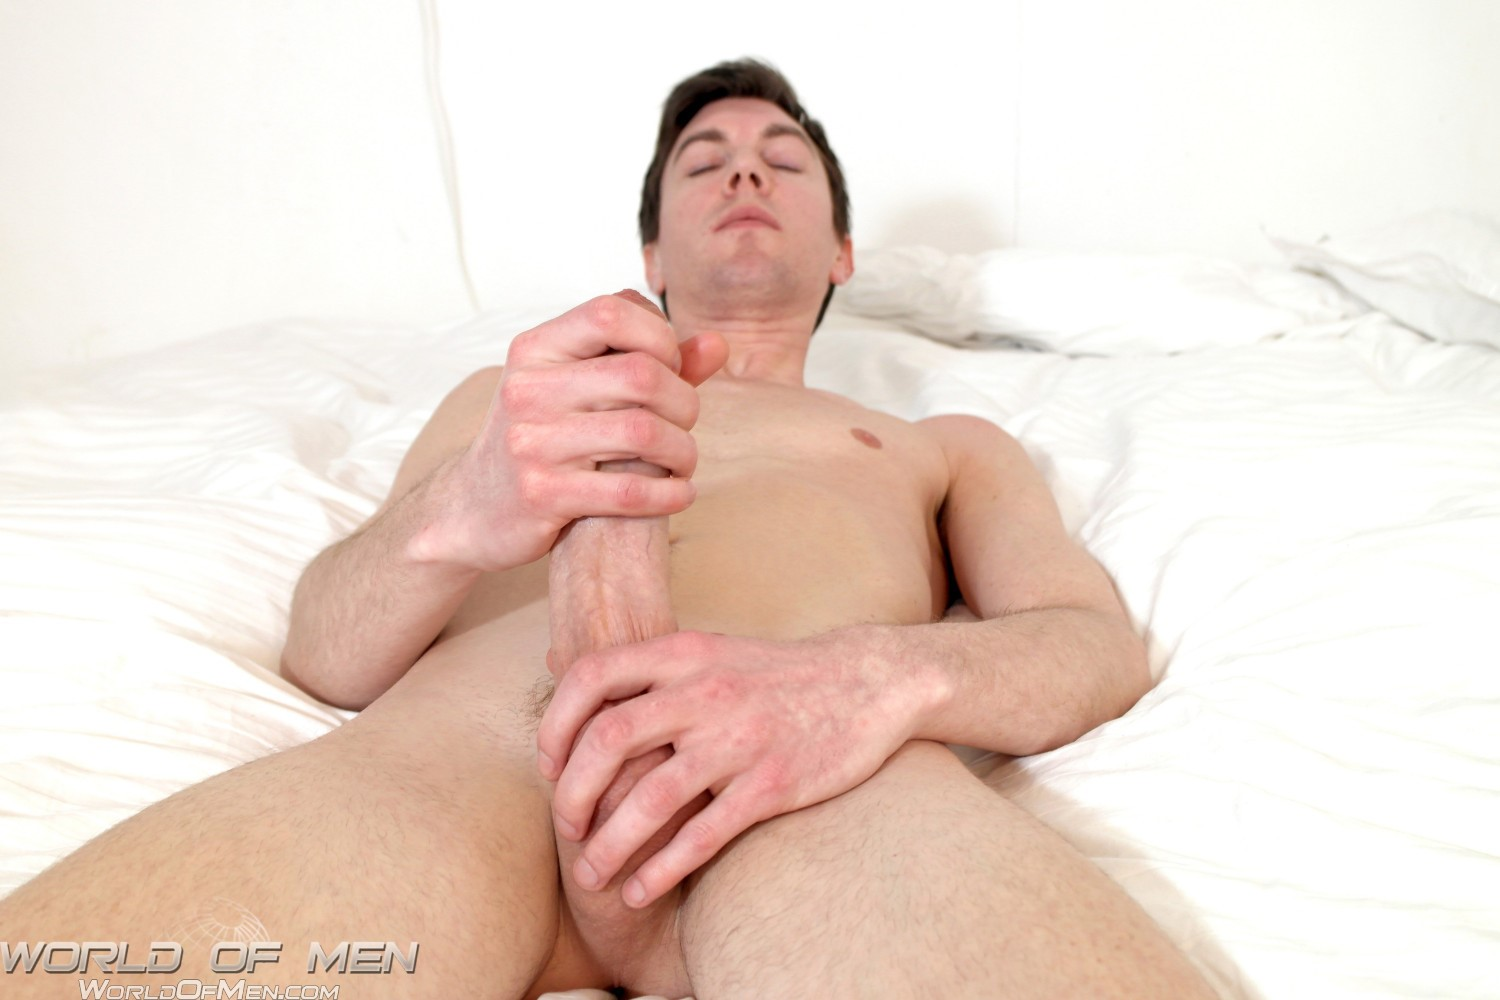 World-of-Men-Bjorn-Swedish-Twink-With-A-Big-Uncut-Cock-Amateur-Gay-Porn-05 Swedish Twink Fingers His Ass And Jerks His Big Uncut Cock